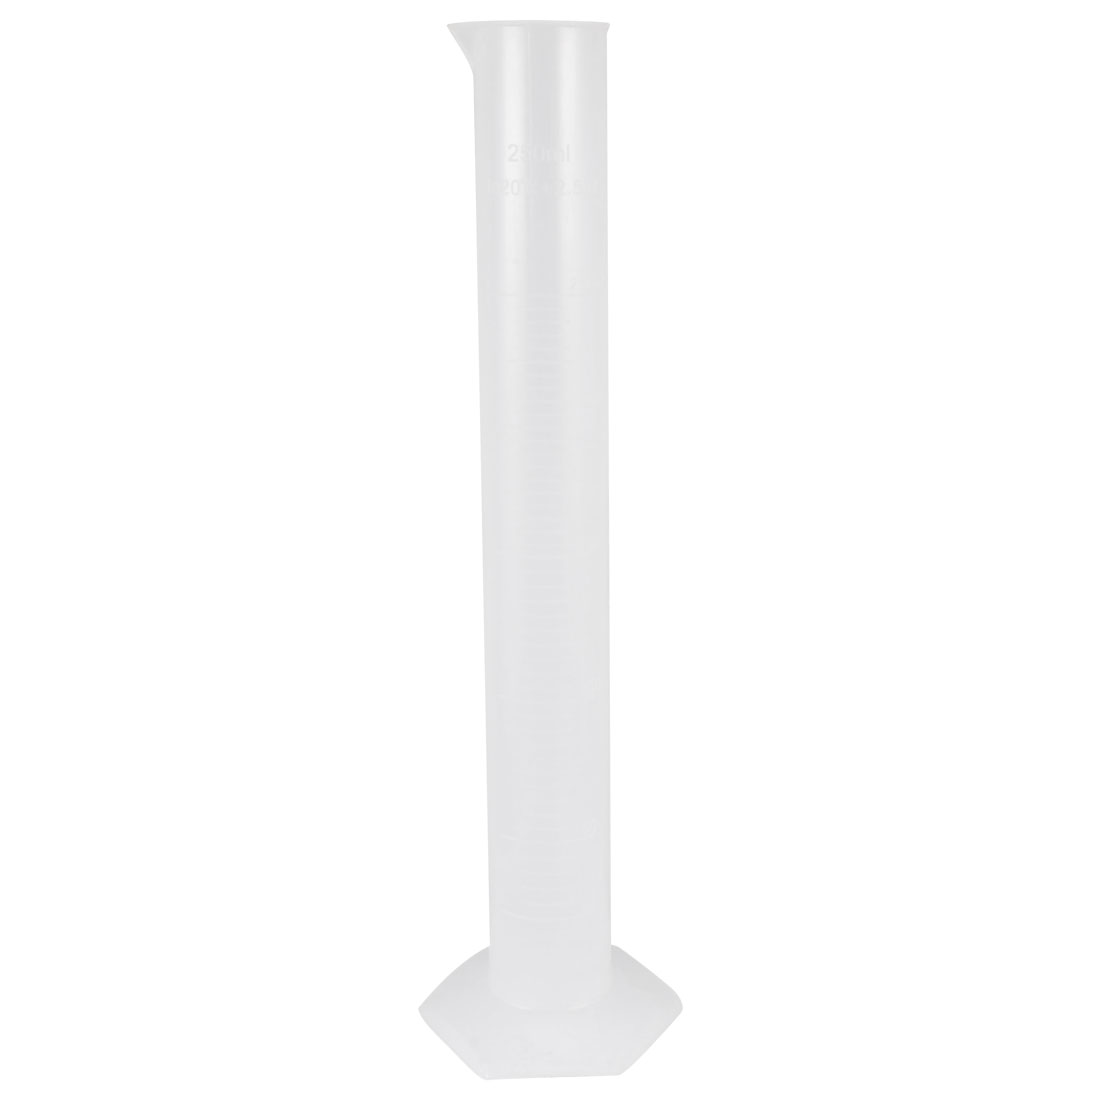 30cm High 250mL Capacity Liquid Measuring Tool Clear White Graduated Cylinder